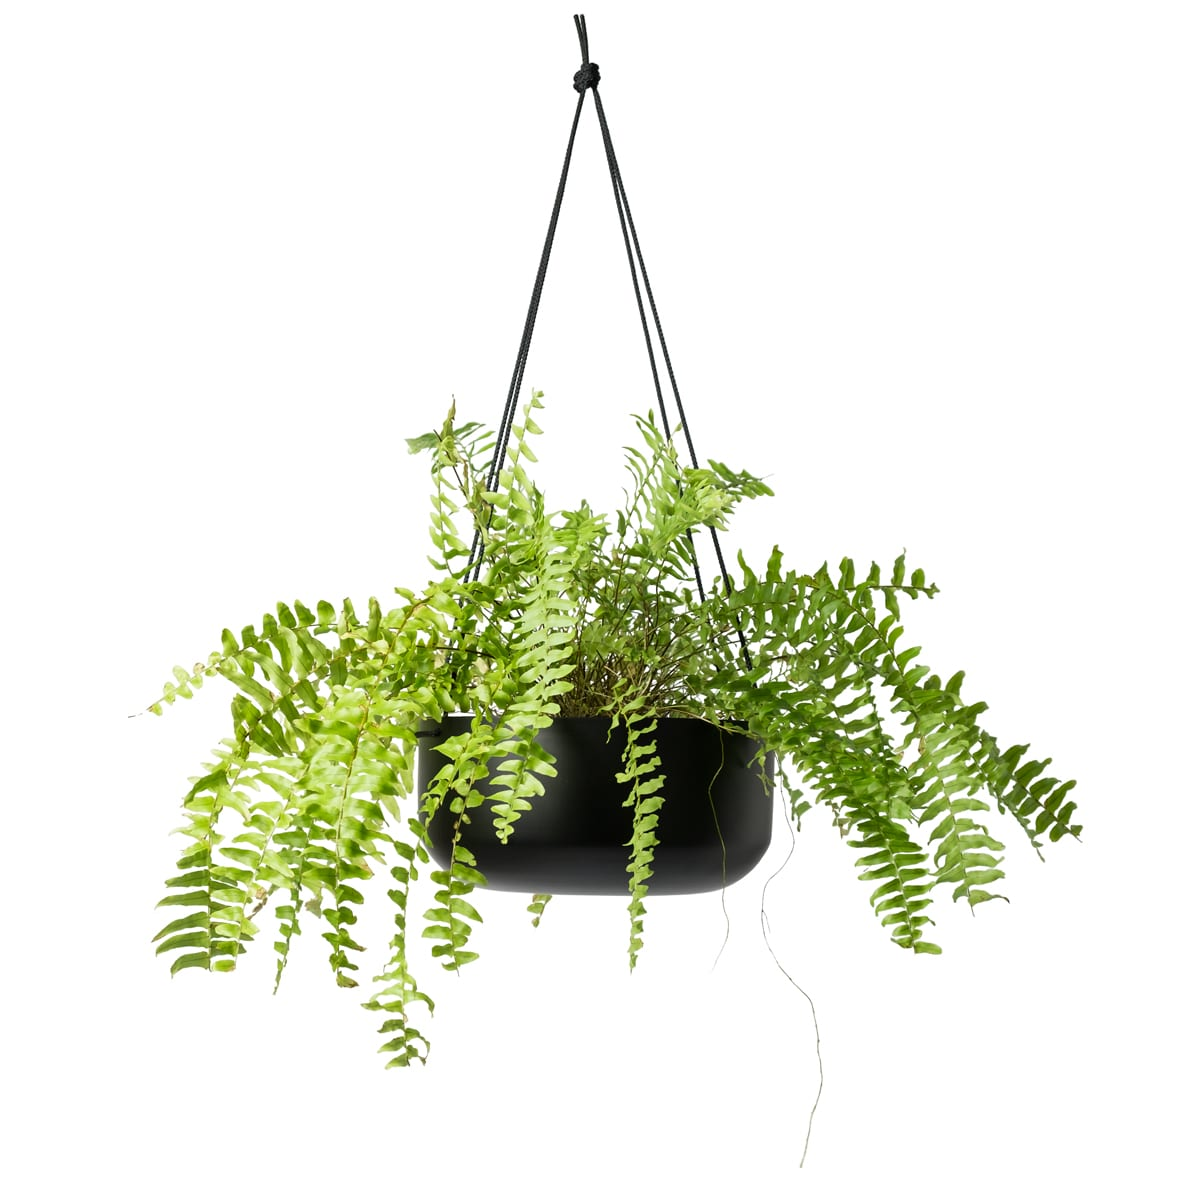 Hanging Planter Large In Black With Leather Straps By Designed By Lightly